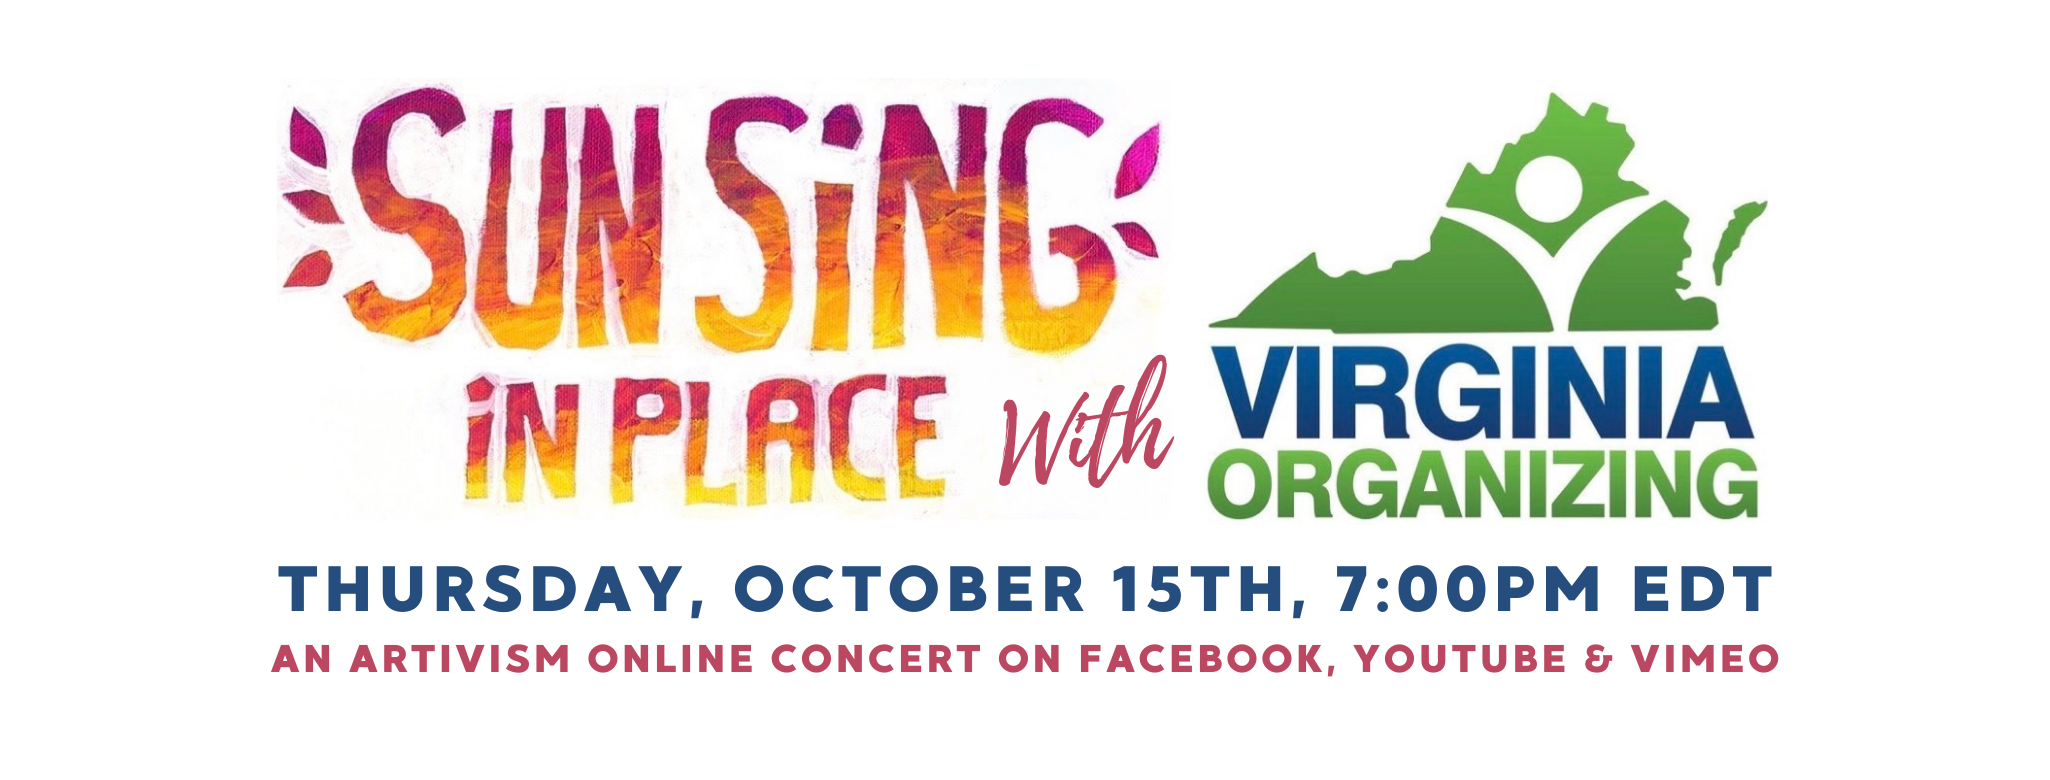 ARTivism Virginia Celebrates 10th SUN SiNG iN PLACE Concert!